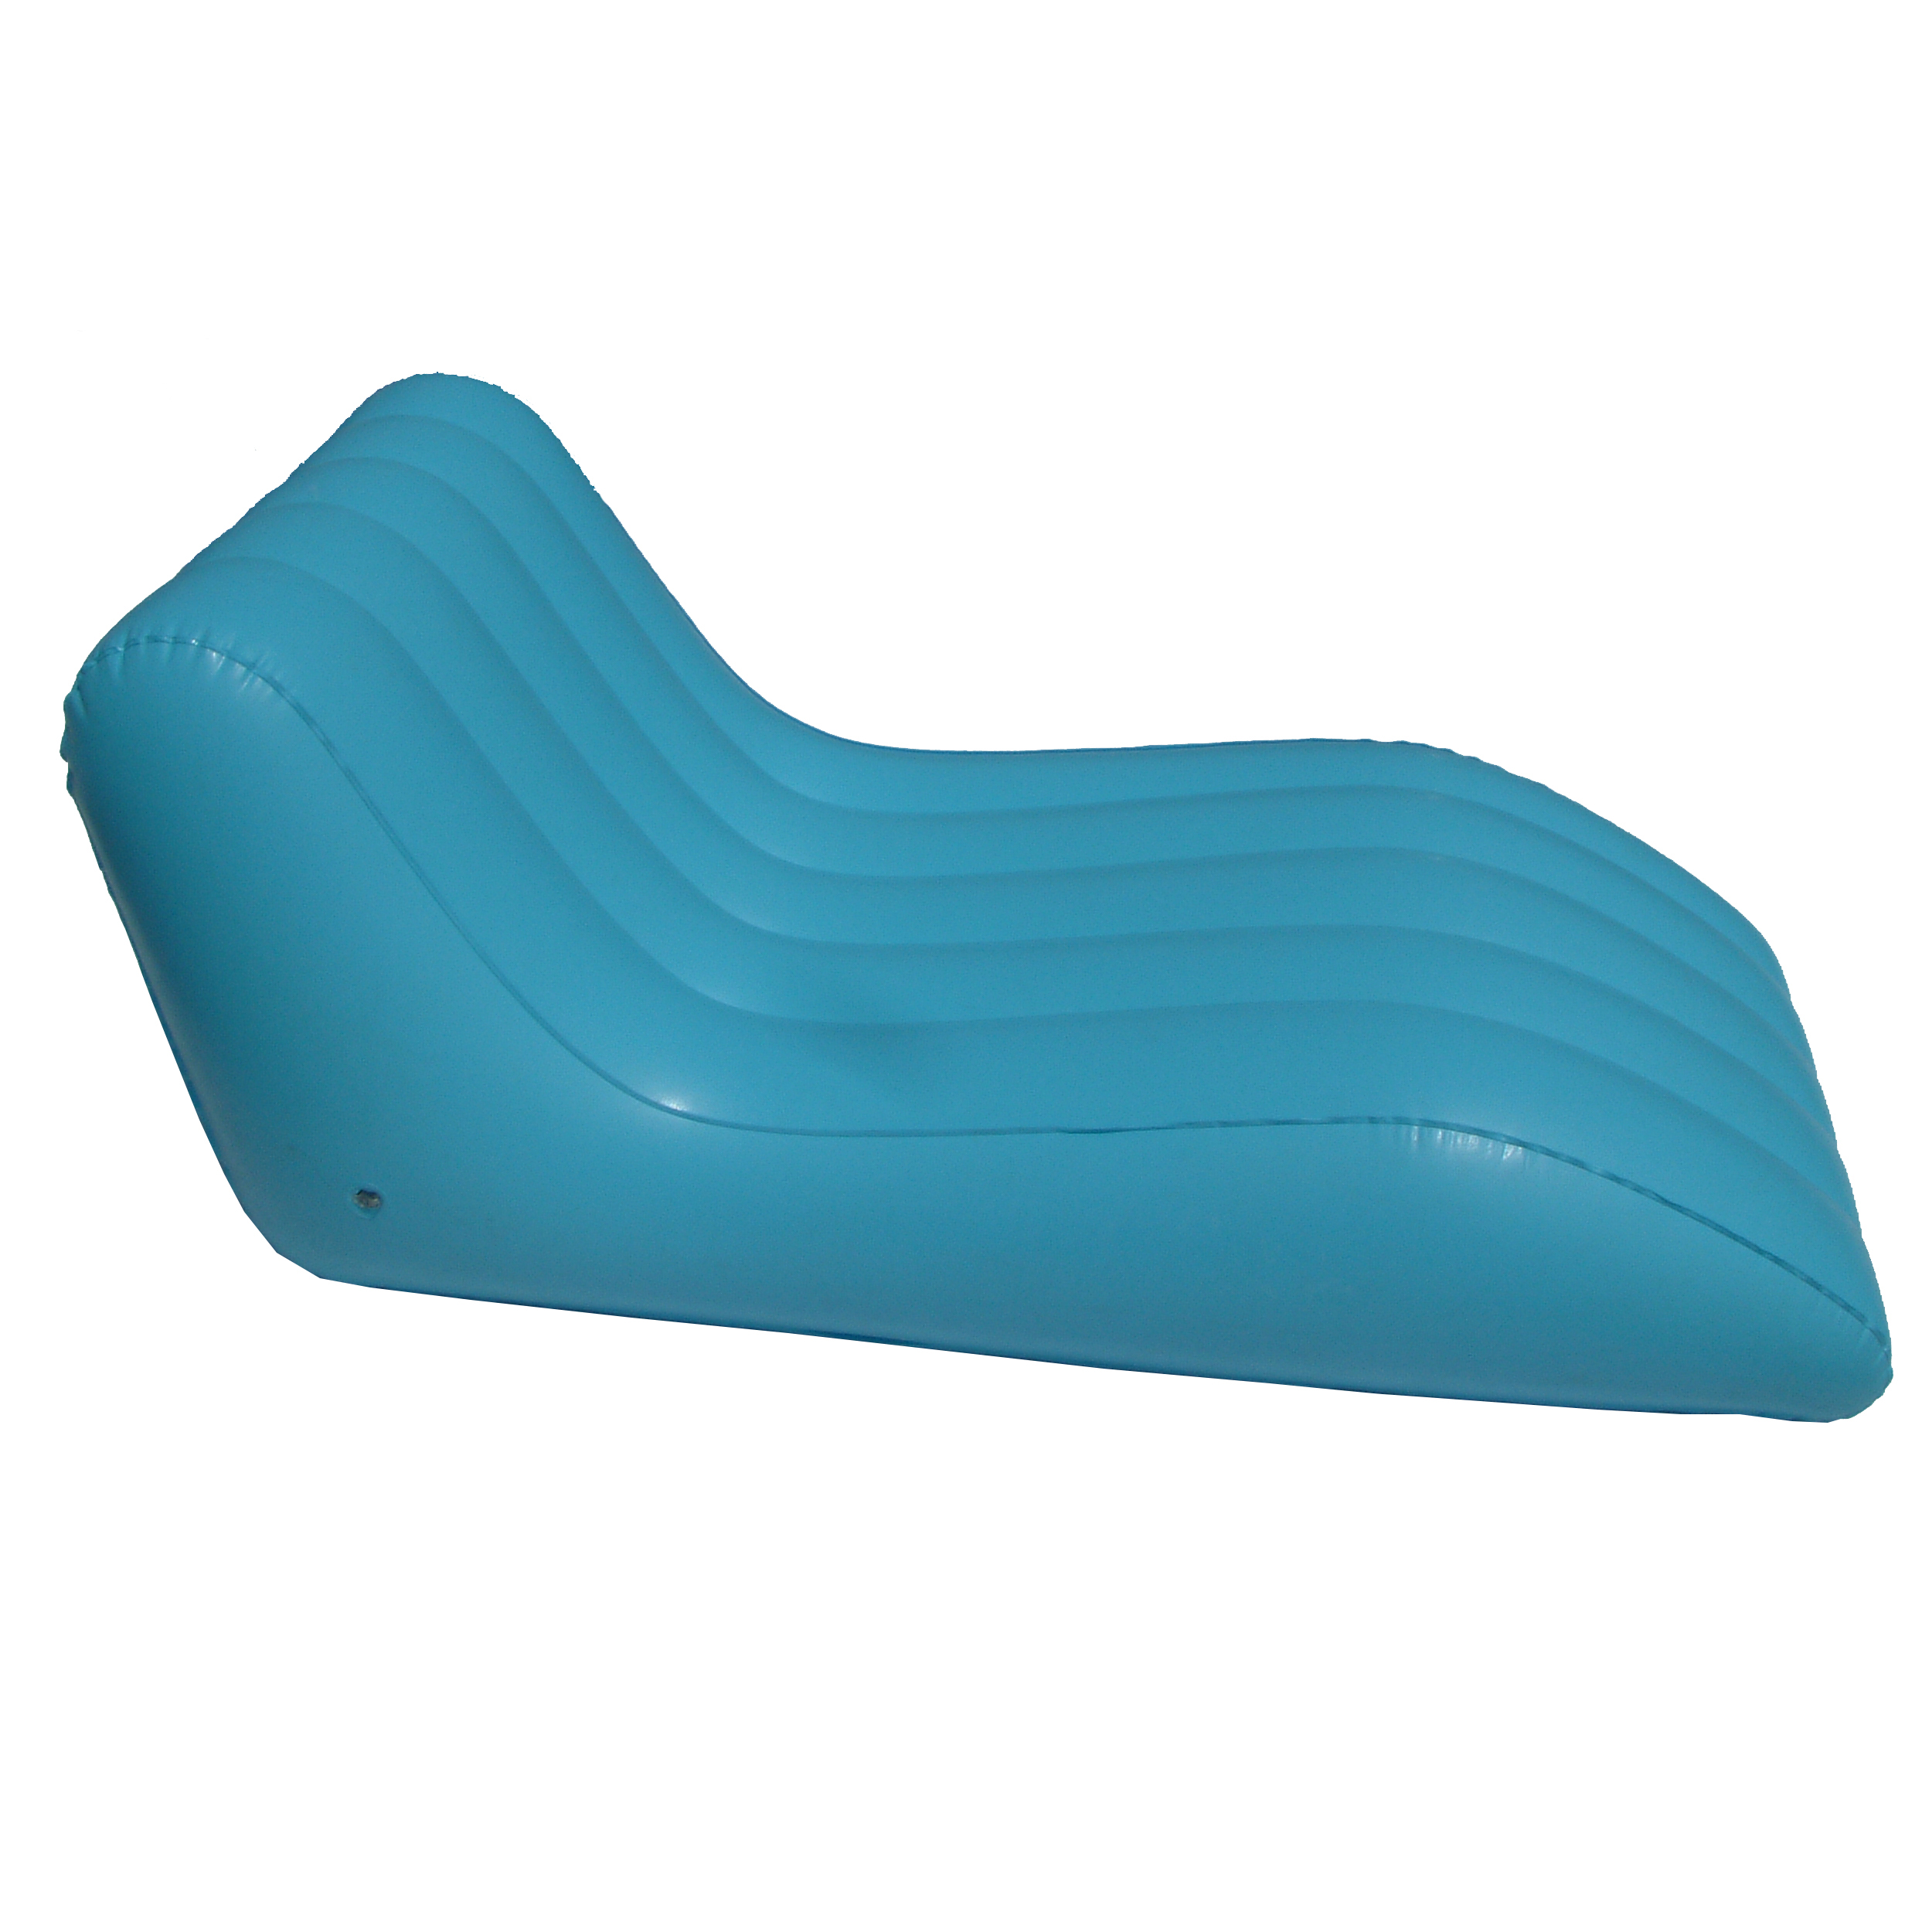 Pvc Flocking Bedroom Inflatable Lounger Air Sofa With Inflatable - Inflatable Chair Sofa